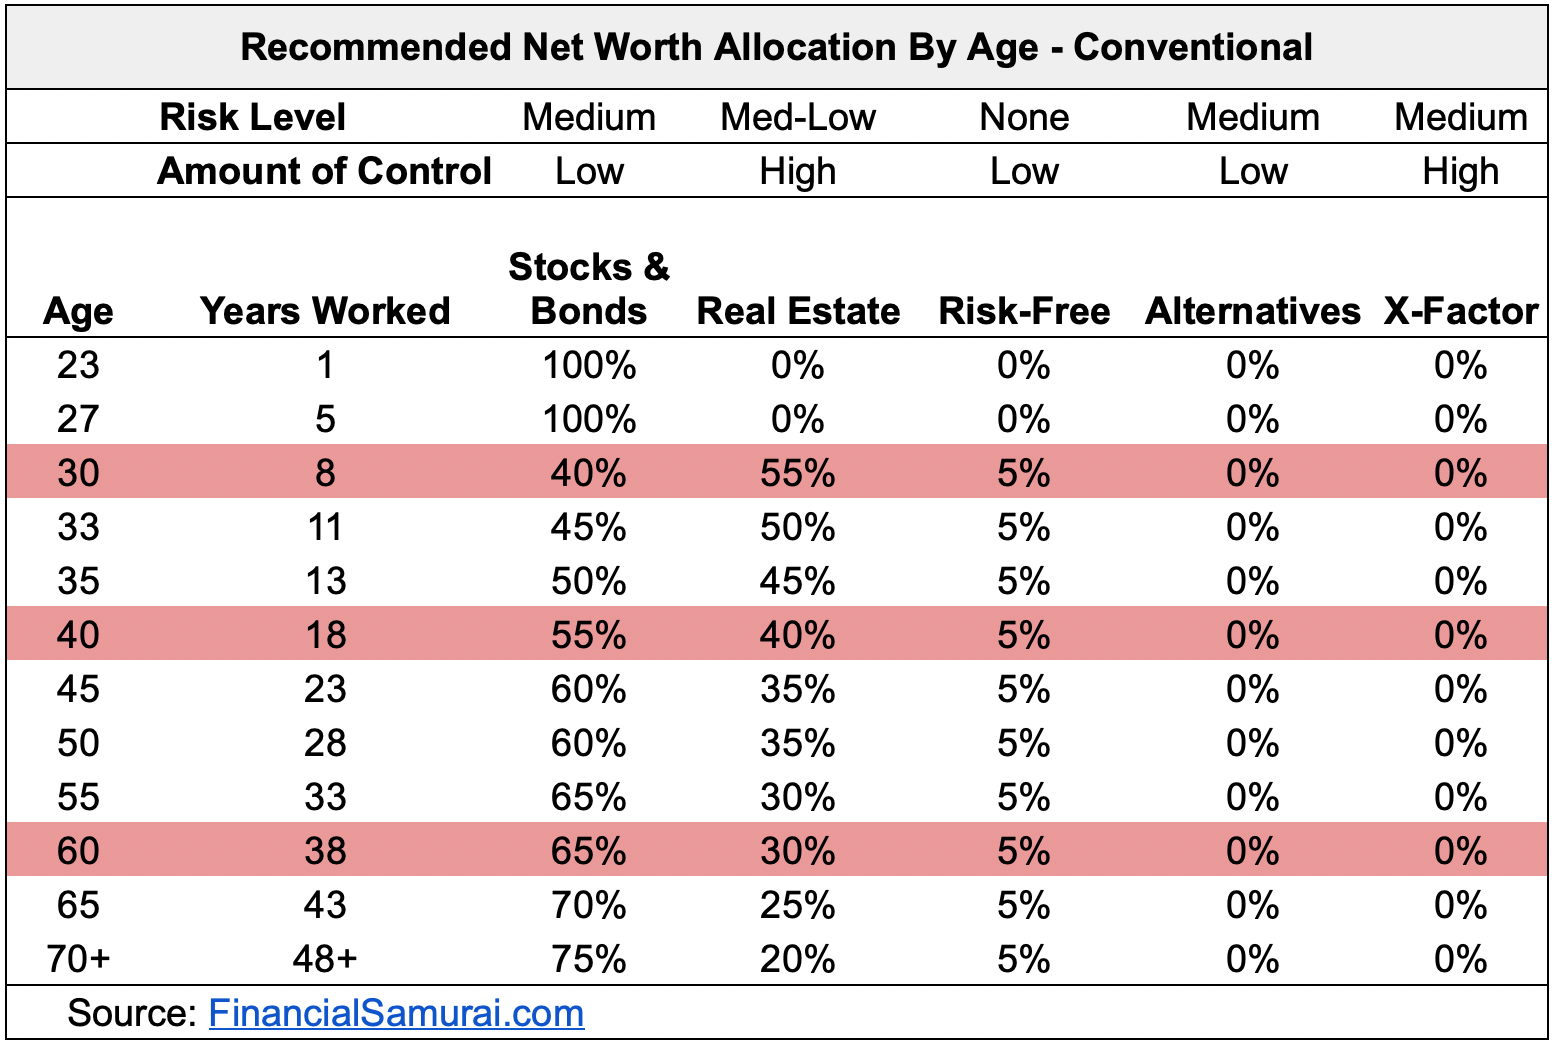 Recommended Net Worth Allocation: Conventional